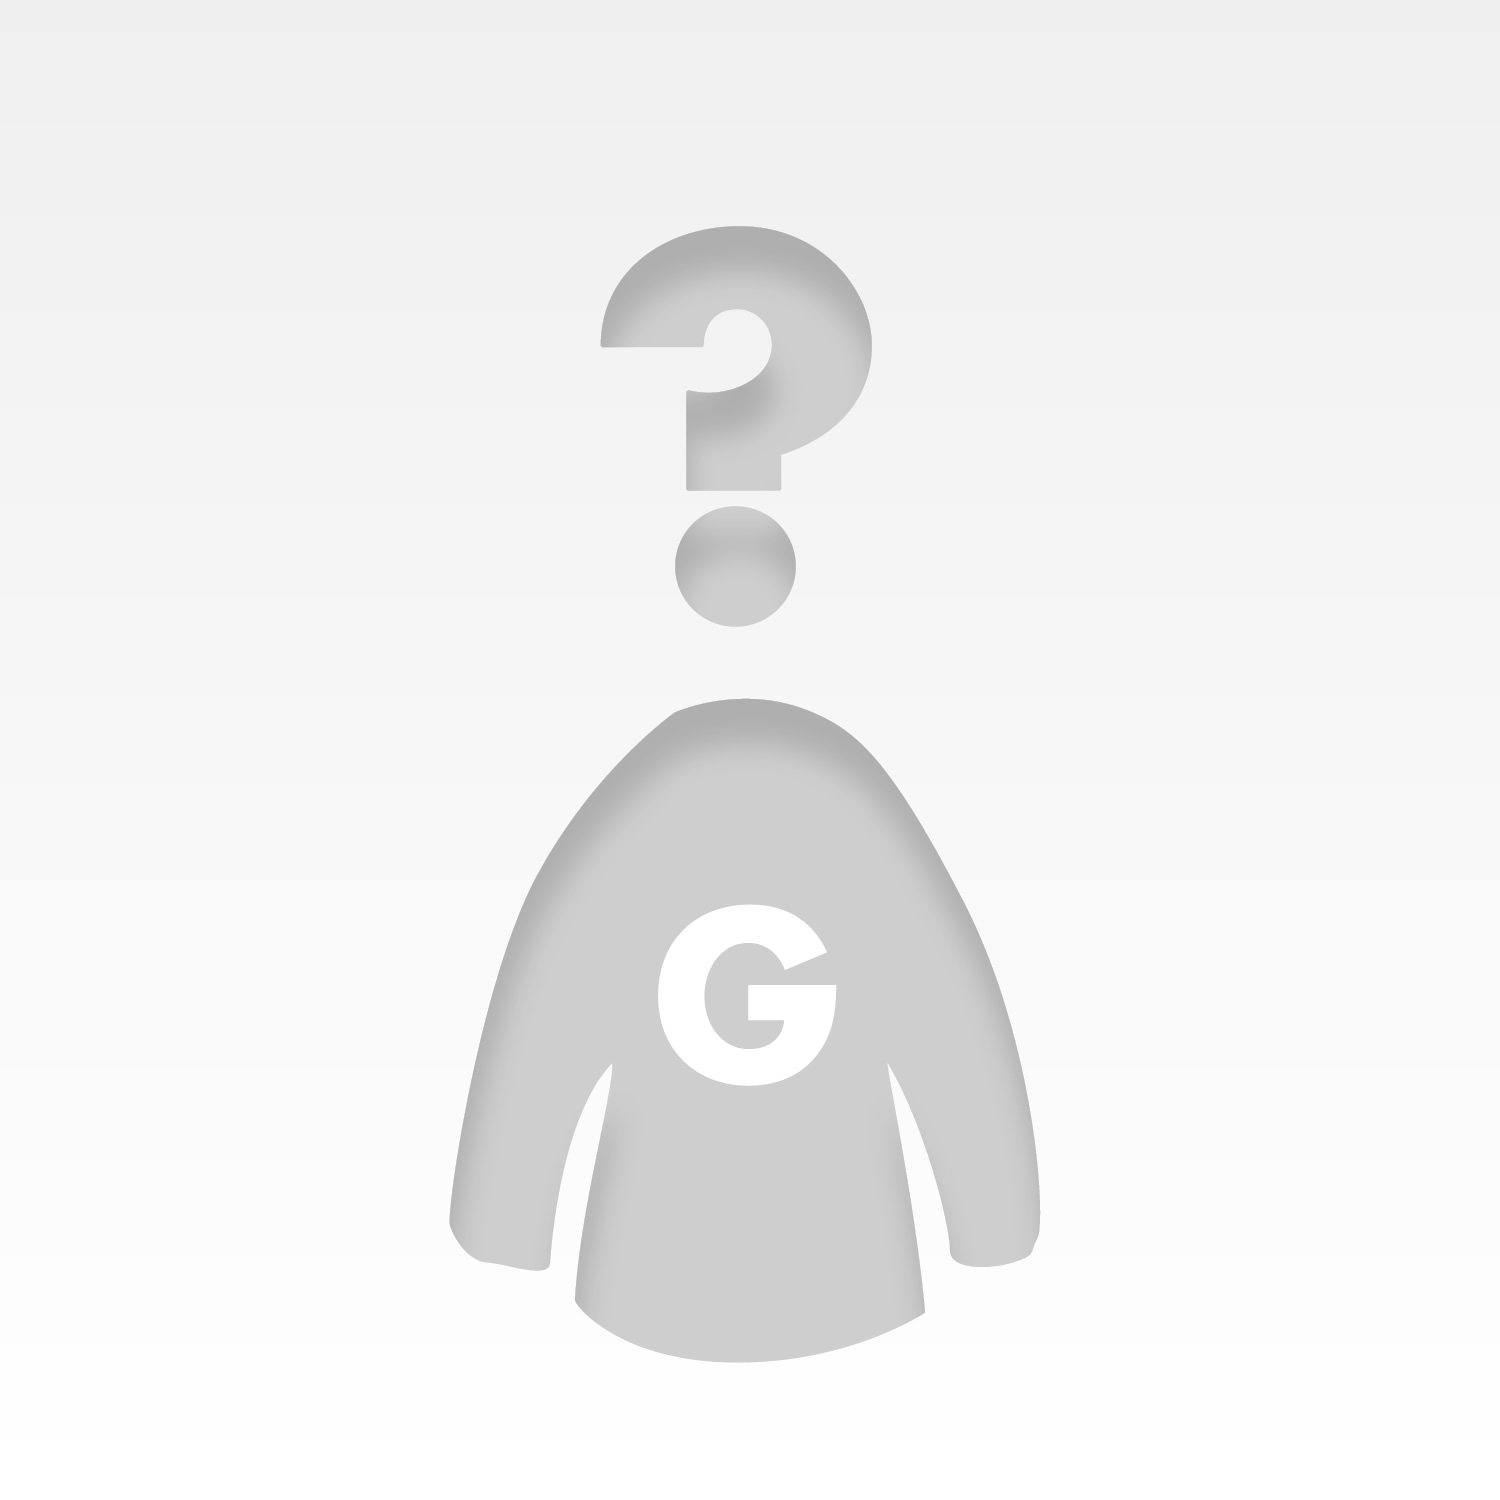 The s003.teachwithme's avatar